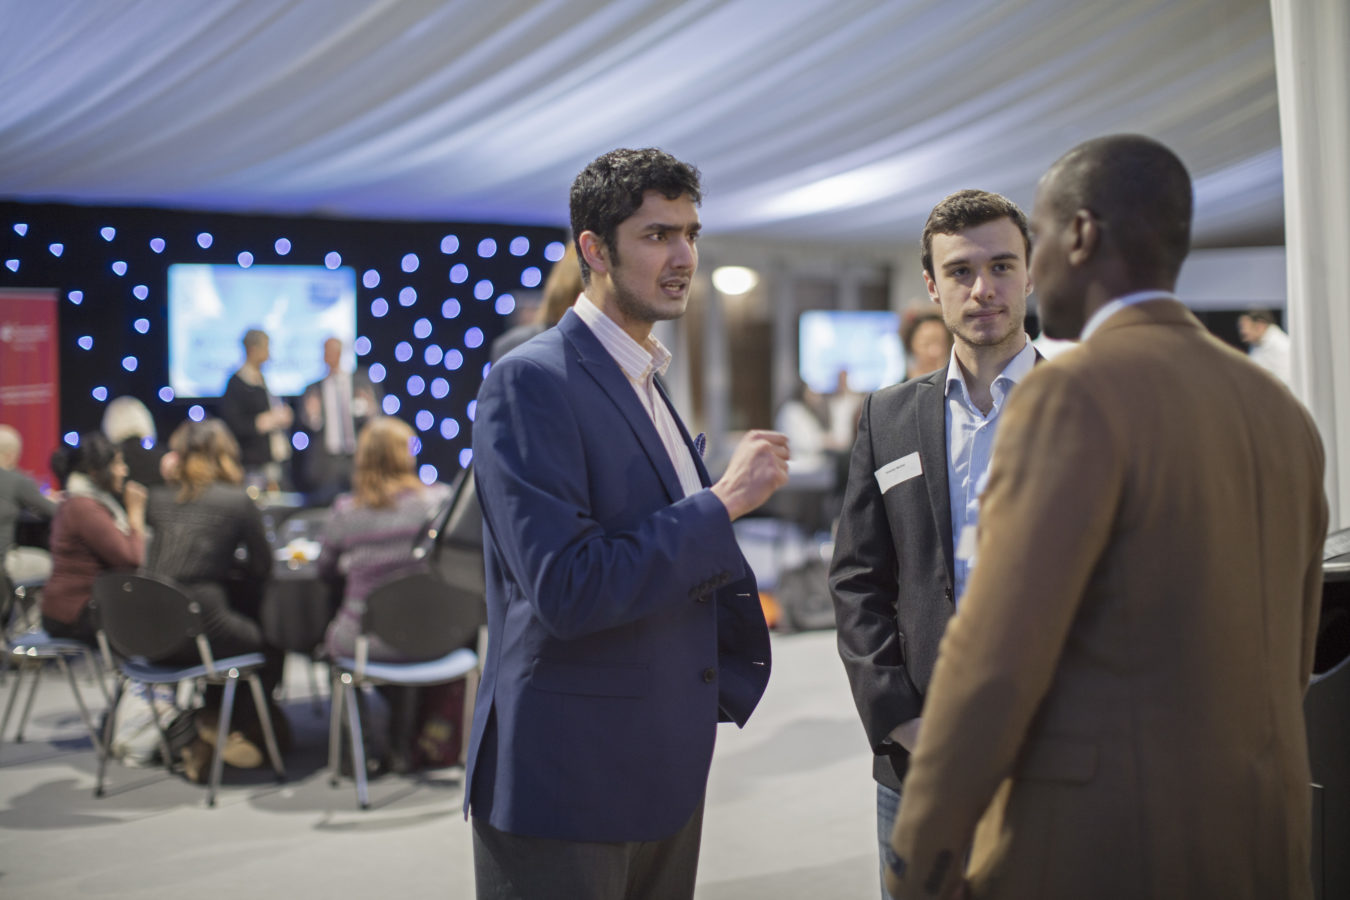 Guests enjoying FZ's 10th birthday bash in the Rolle Marquee at the University of Plymouth